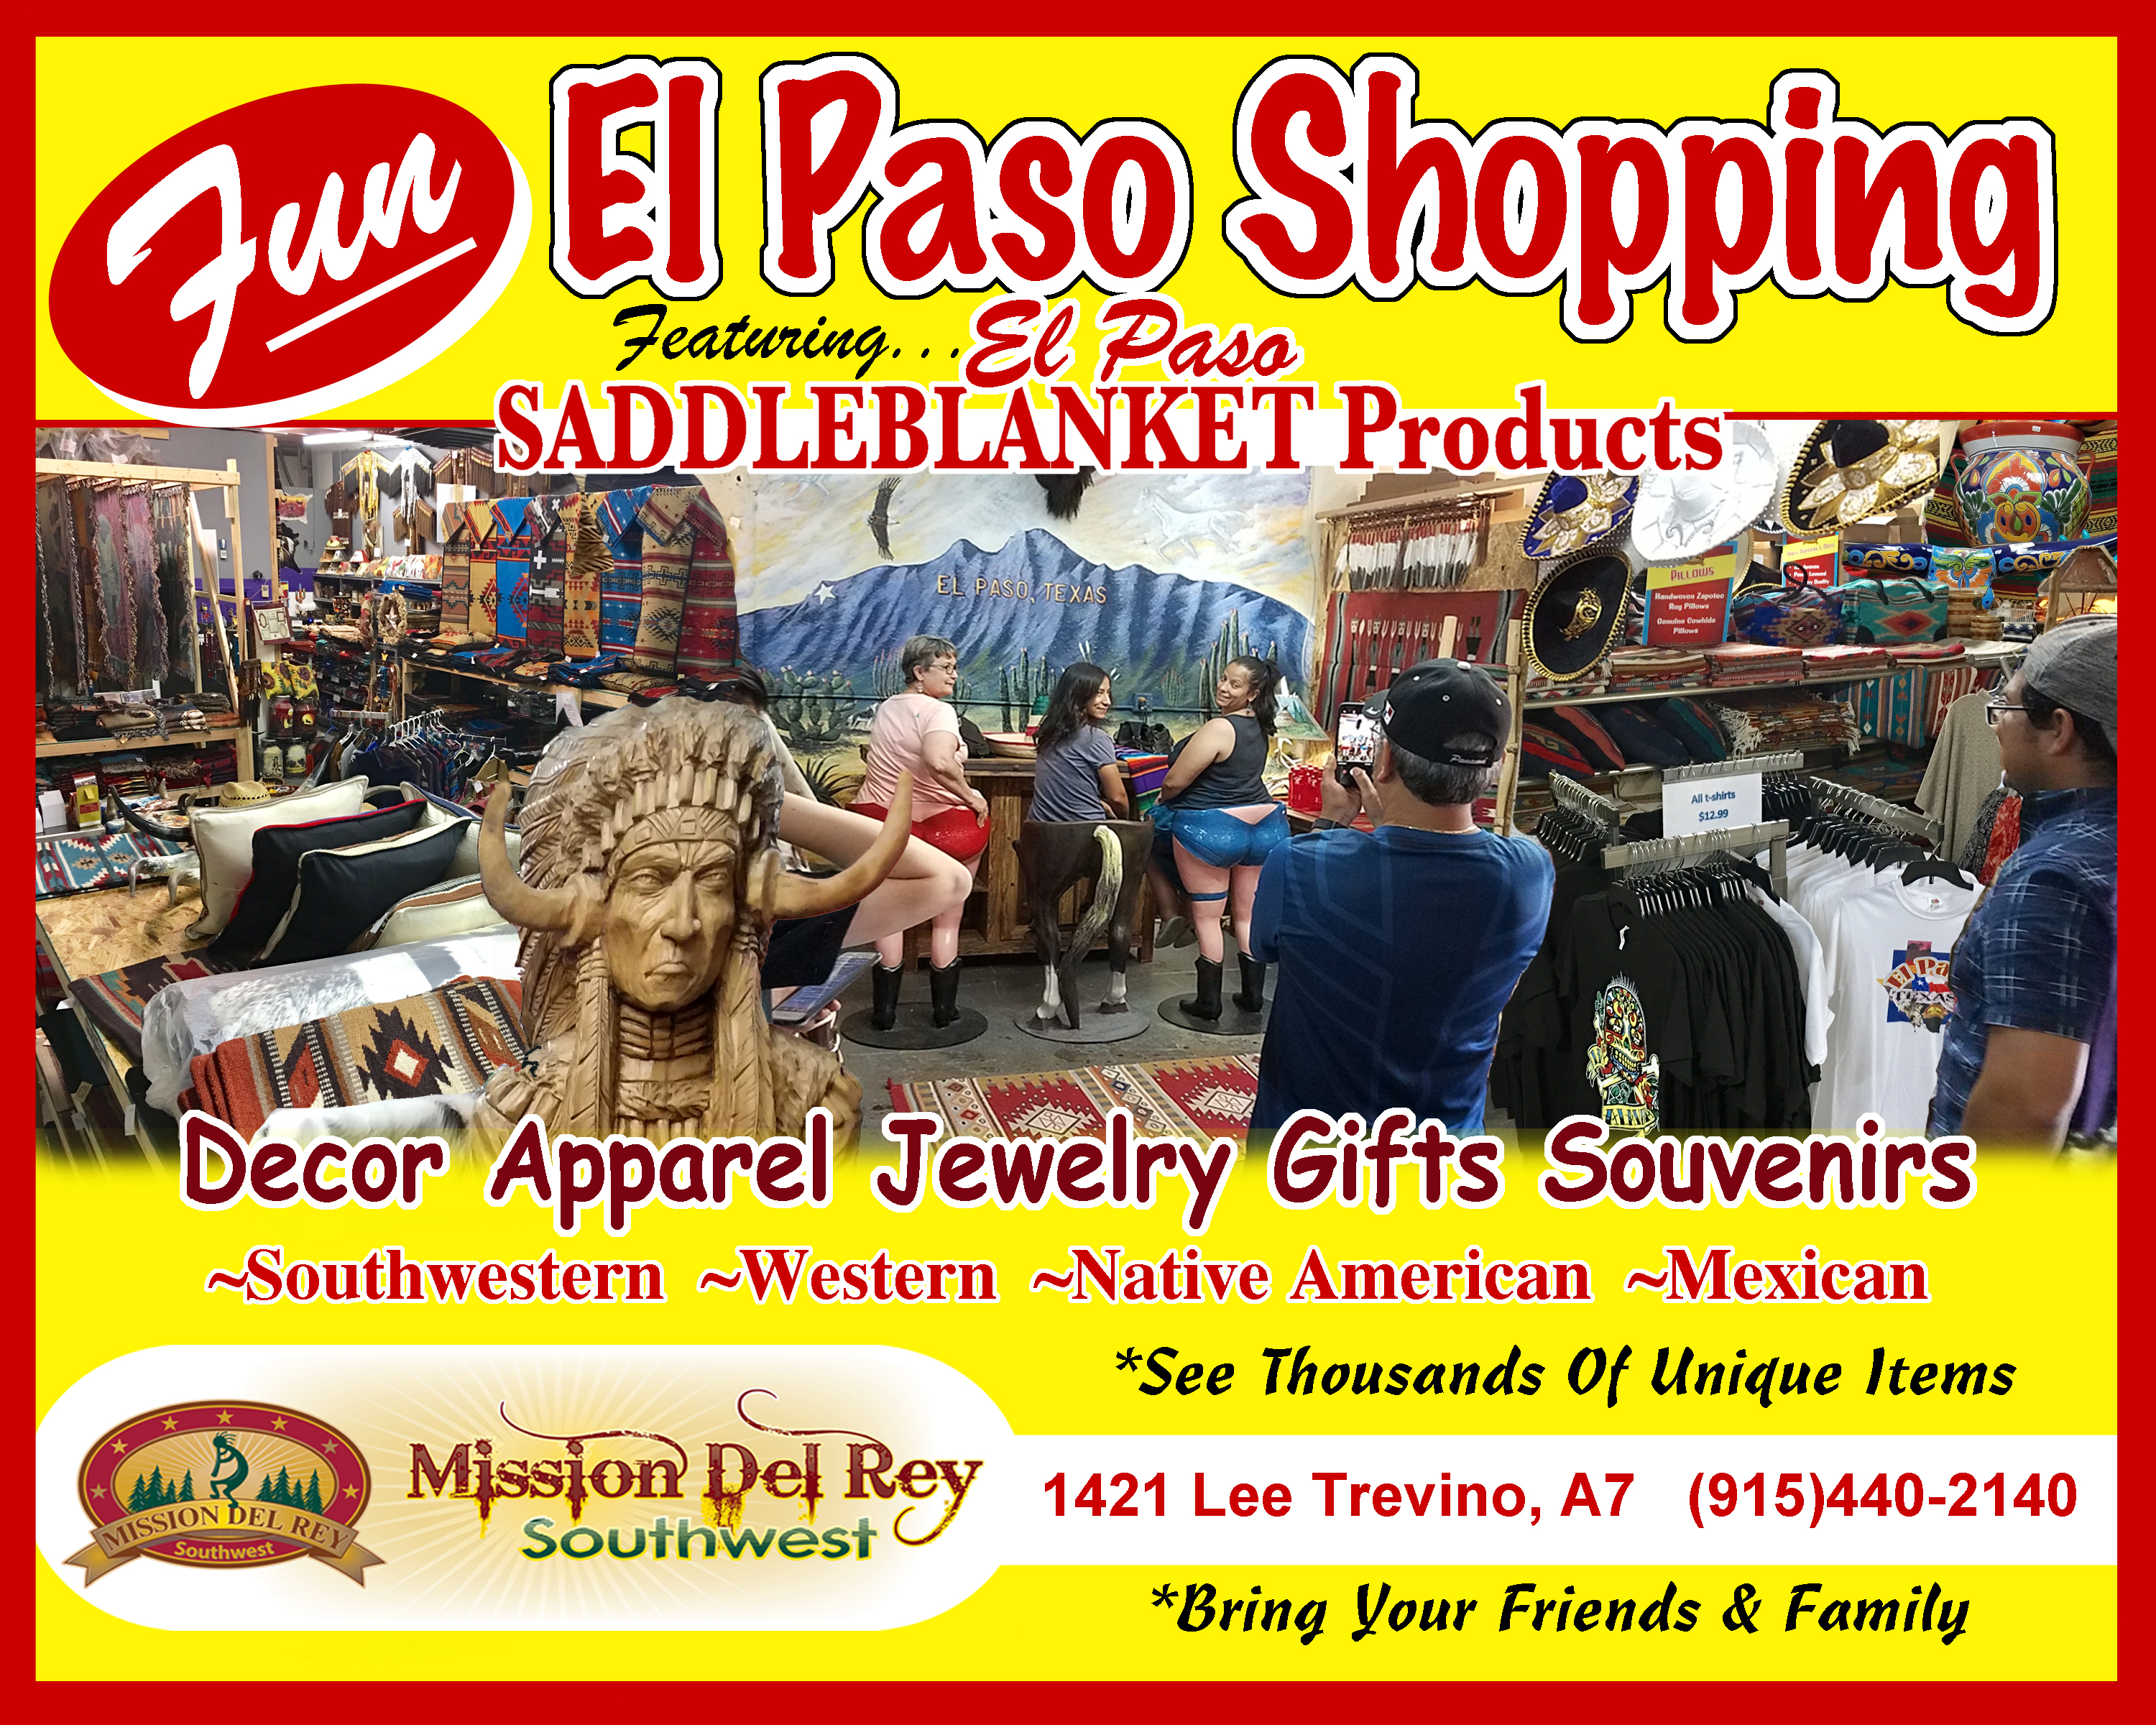 El Paso Souvenirs at Mission Del Rey Southwest